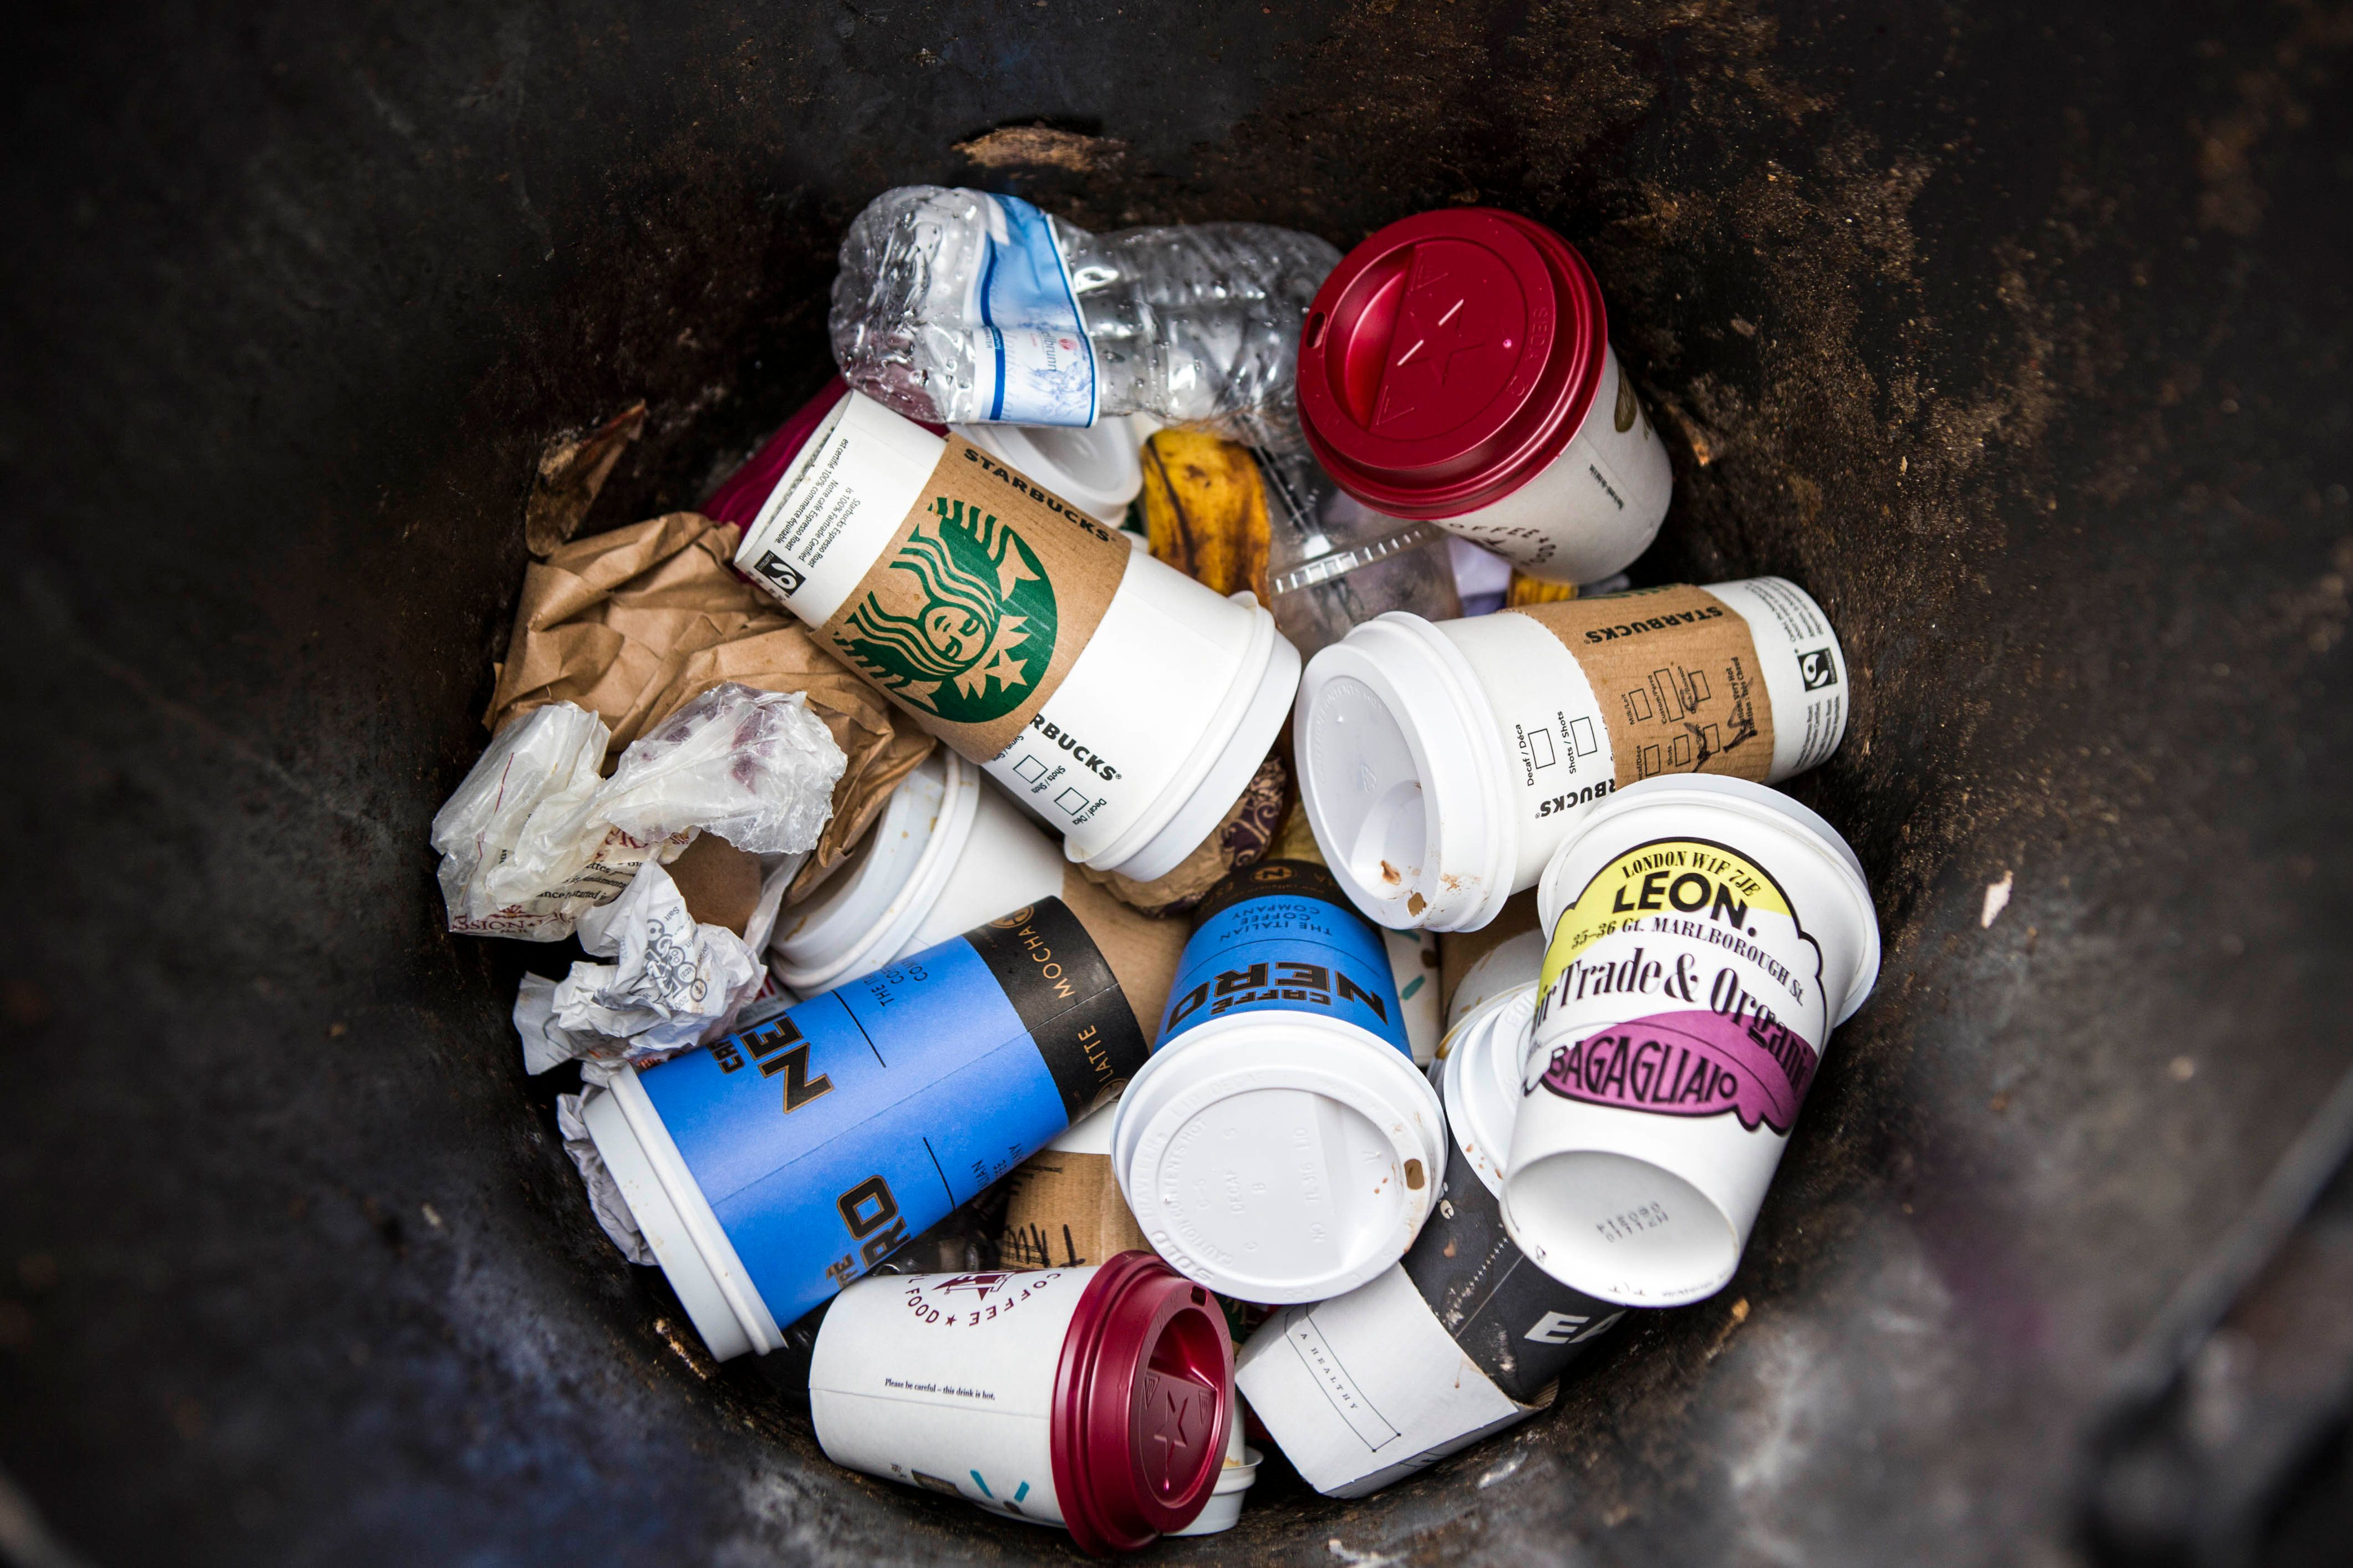 The UK throws away 2.5bn disposable coffee cups every year.